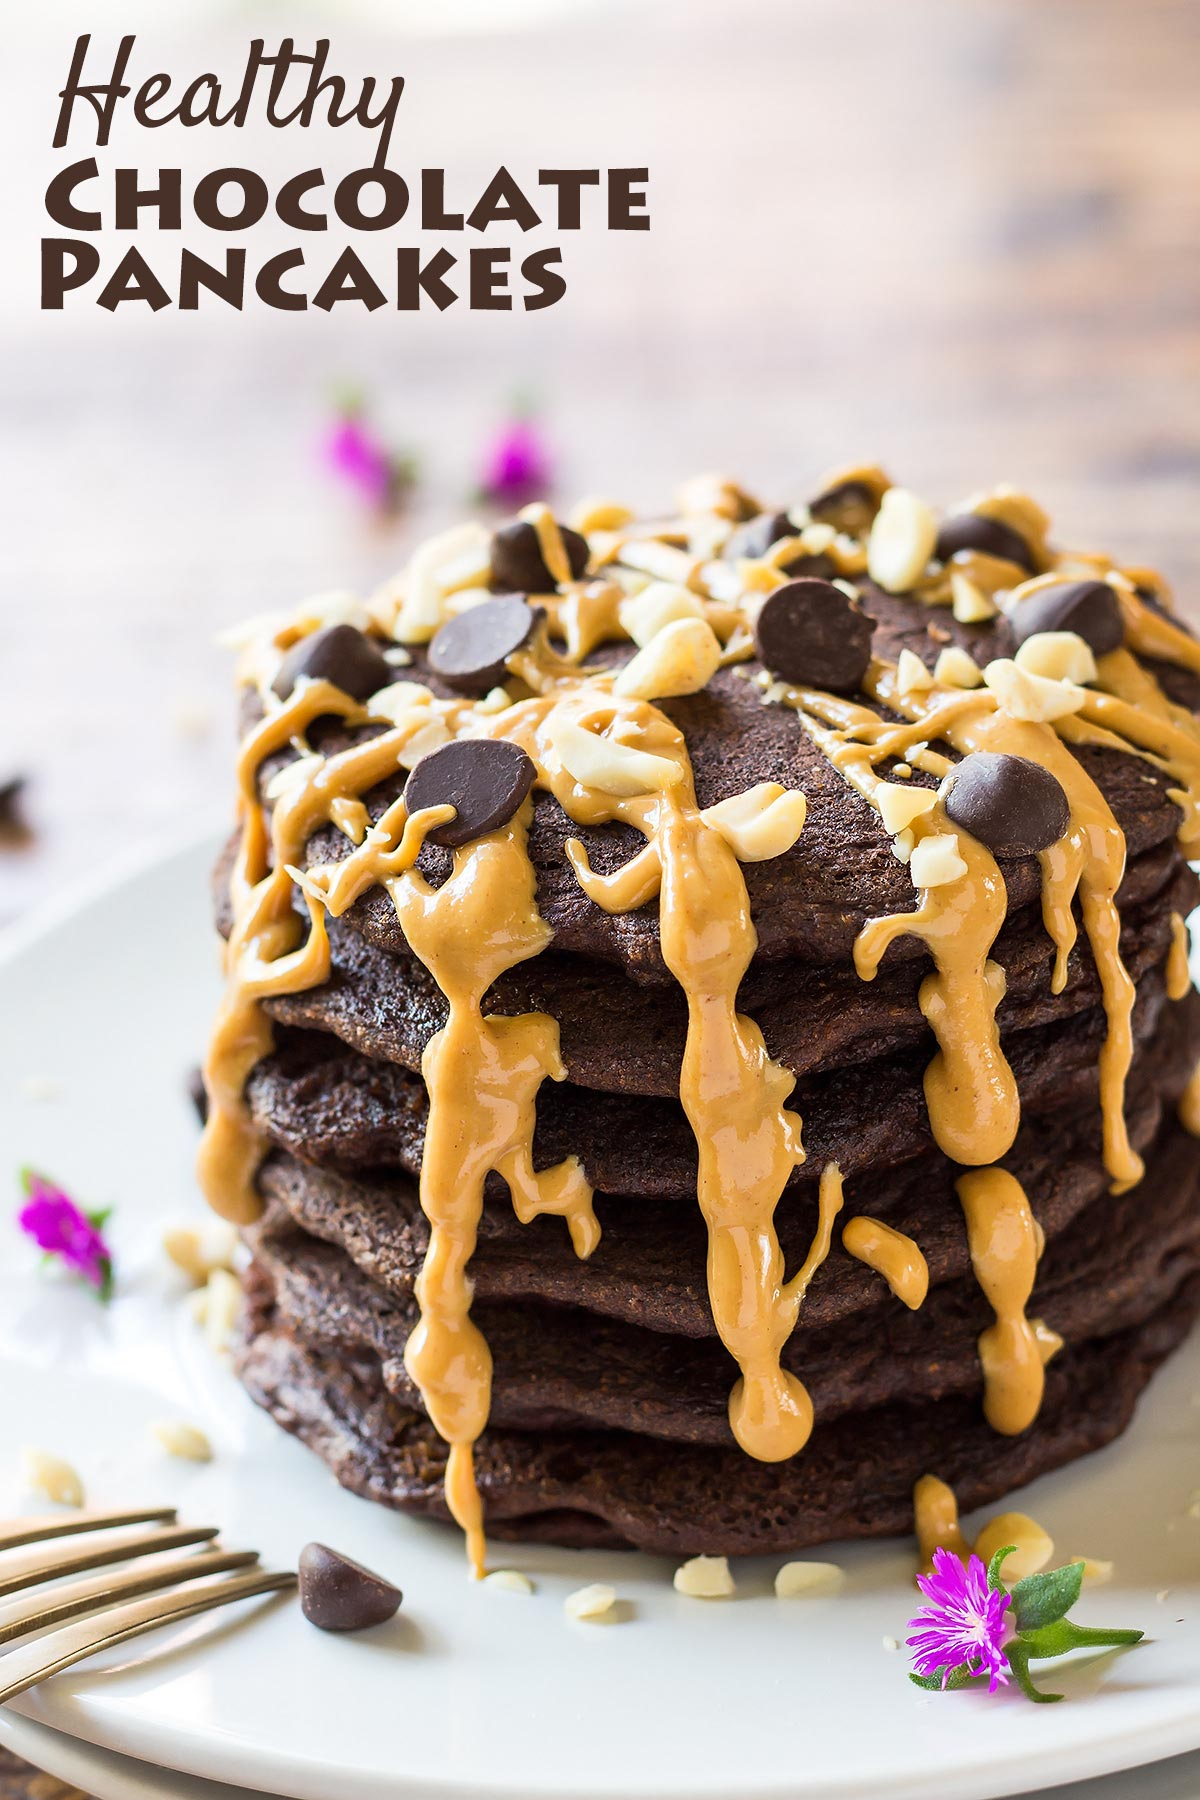 These Healthy Chocolate Pancakes made from coconut flour are a delicious gluten free breakfast treat.